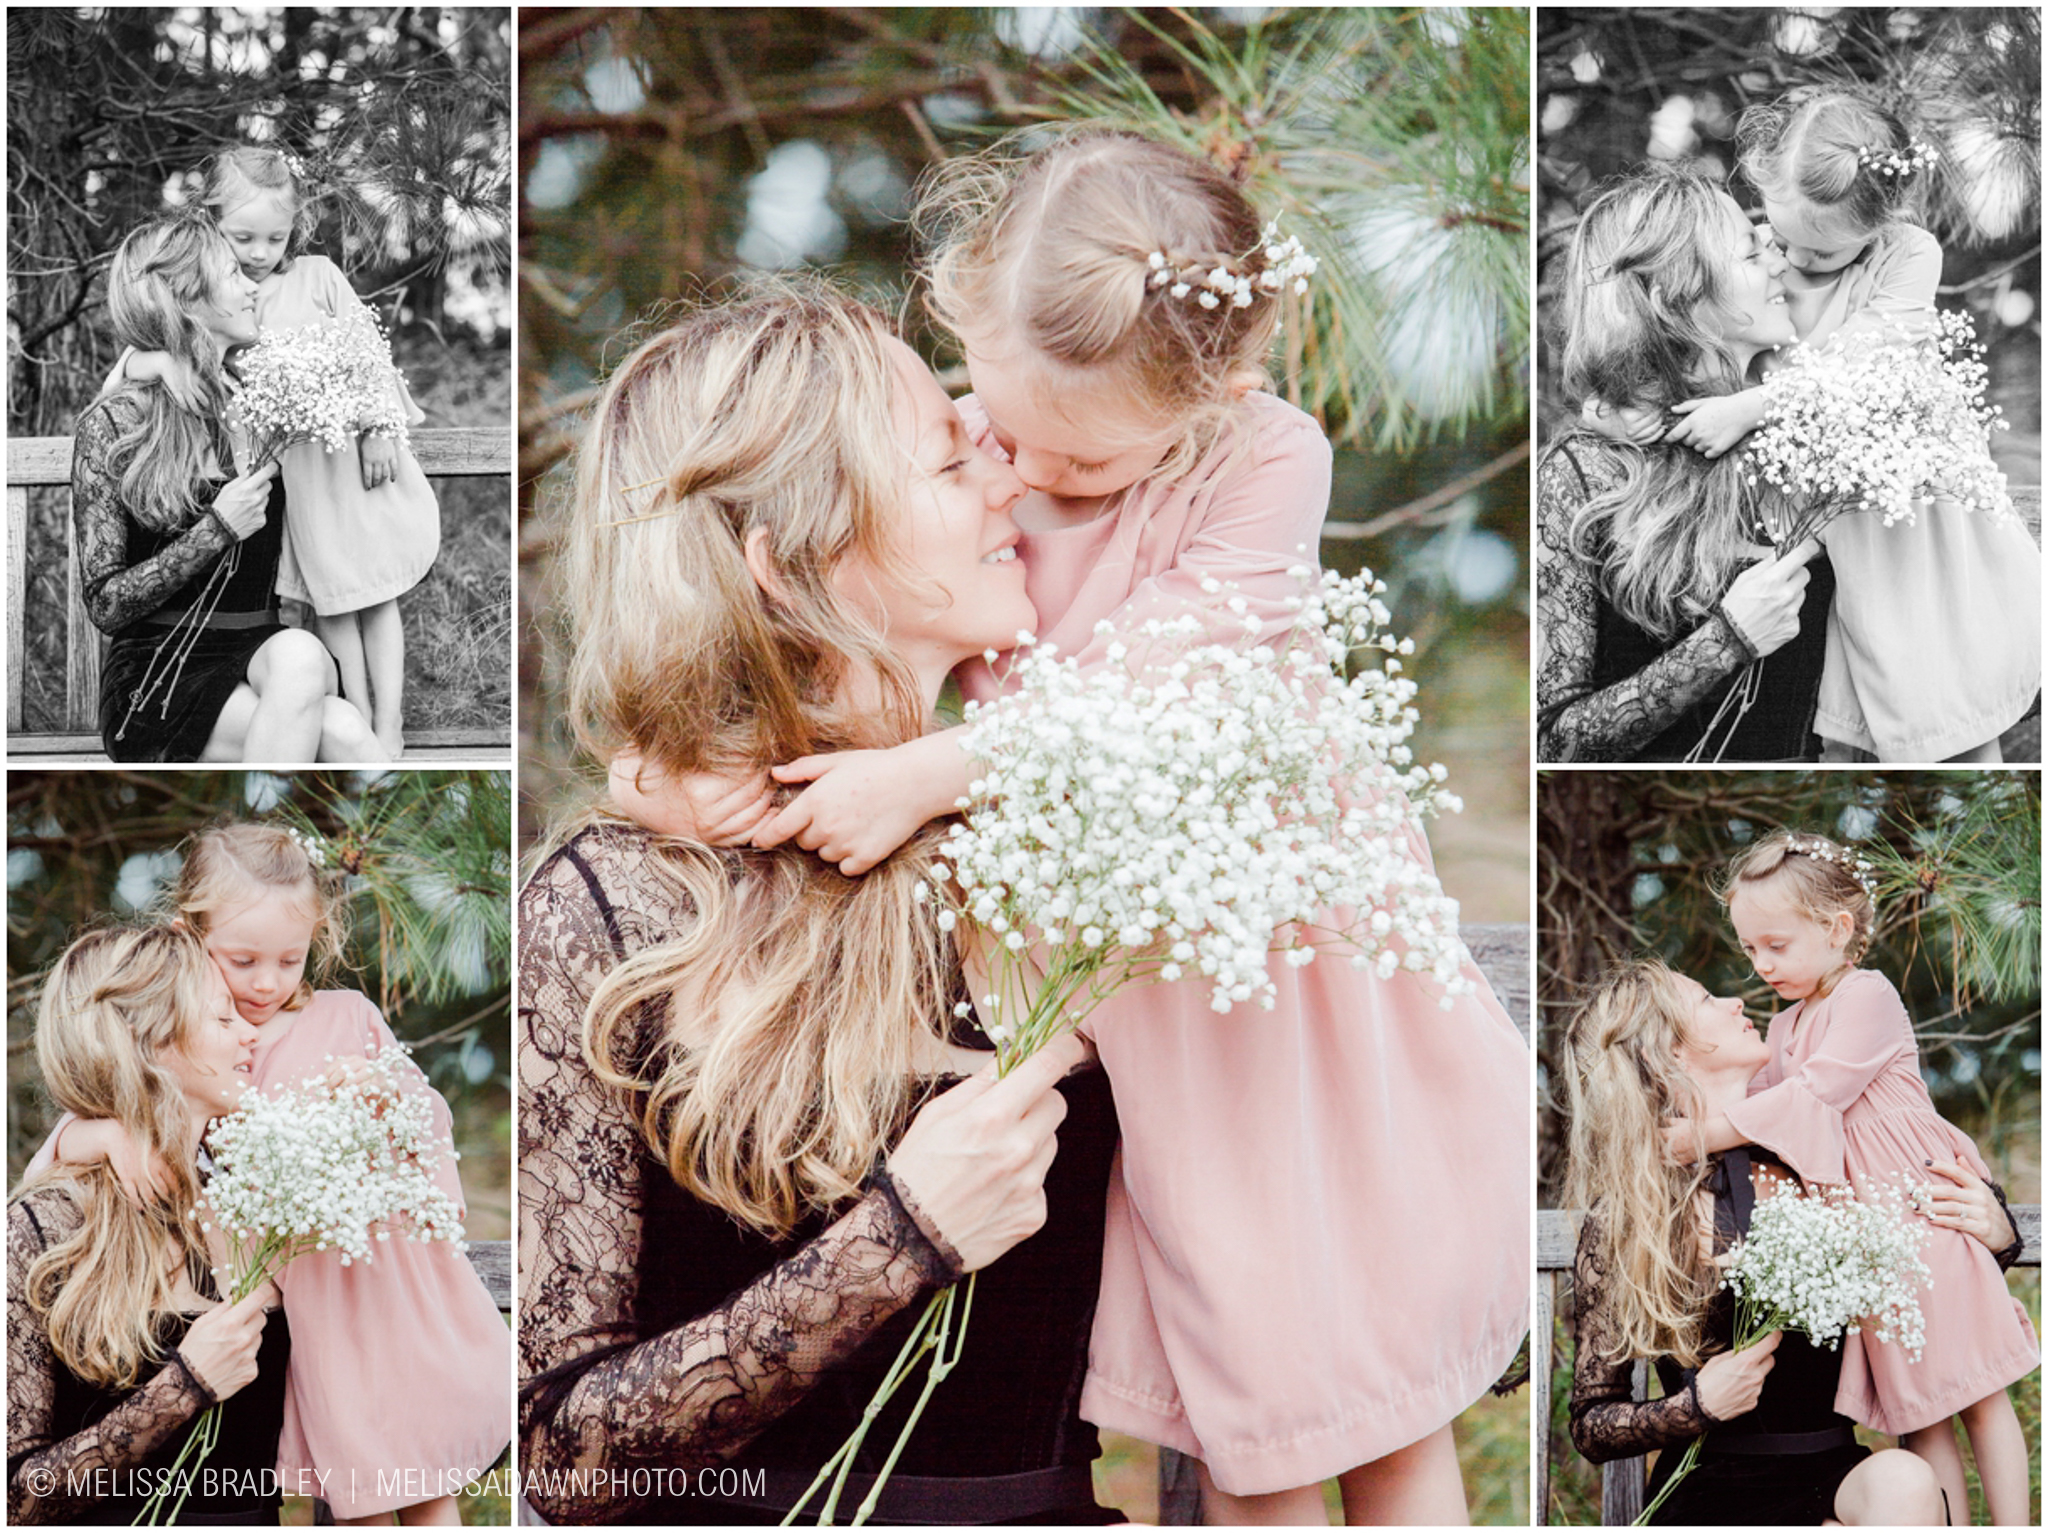 Virginia Beach Family Mother Daughter Photographer_Melissa Dawn Photography_055.jpg